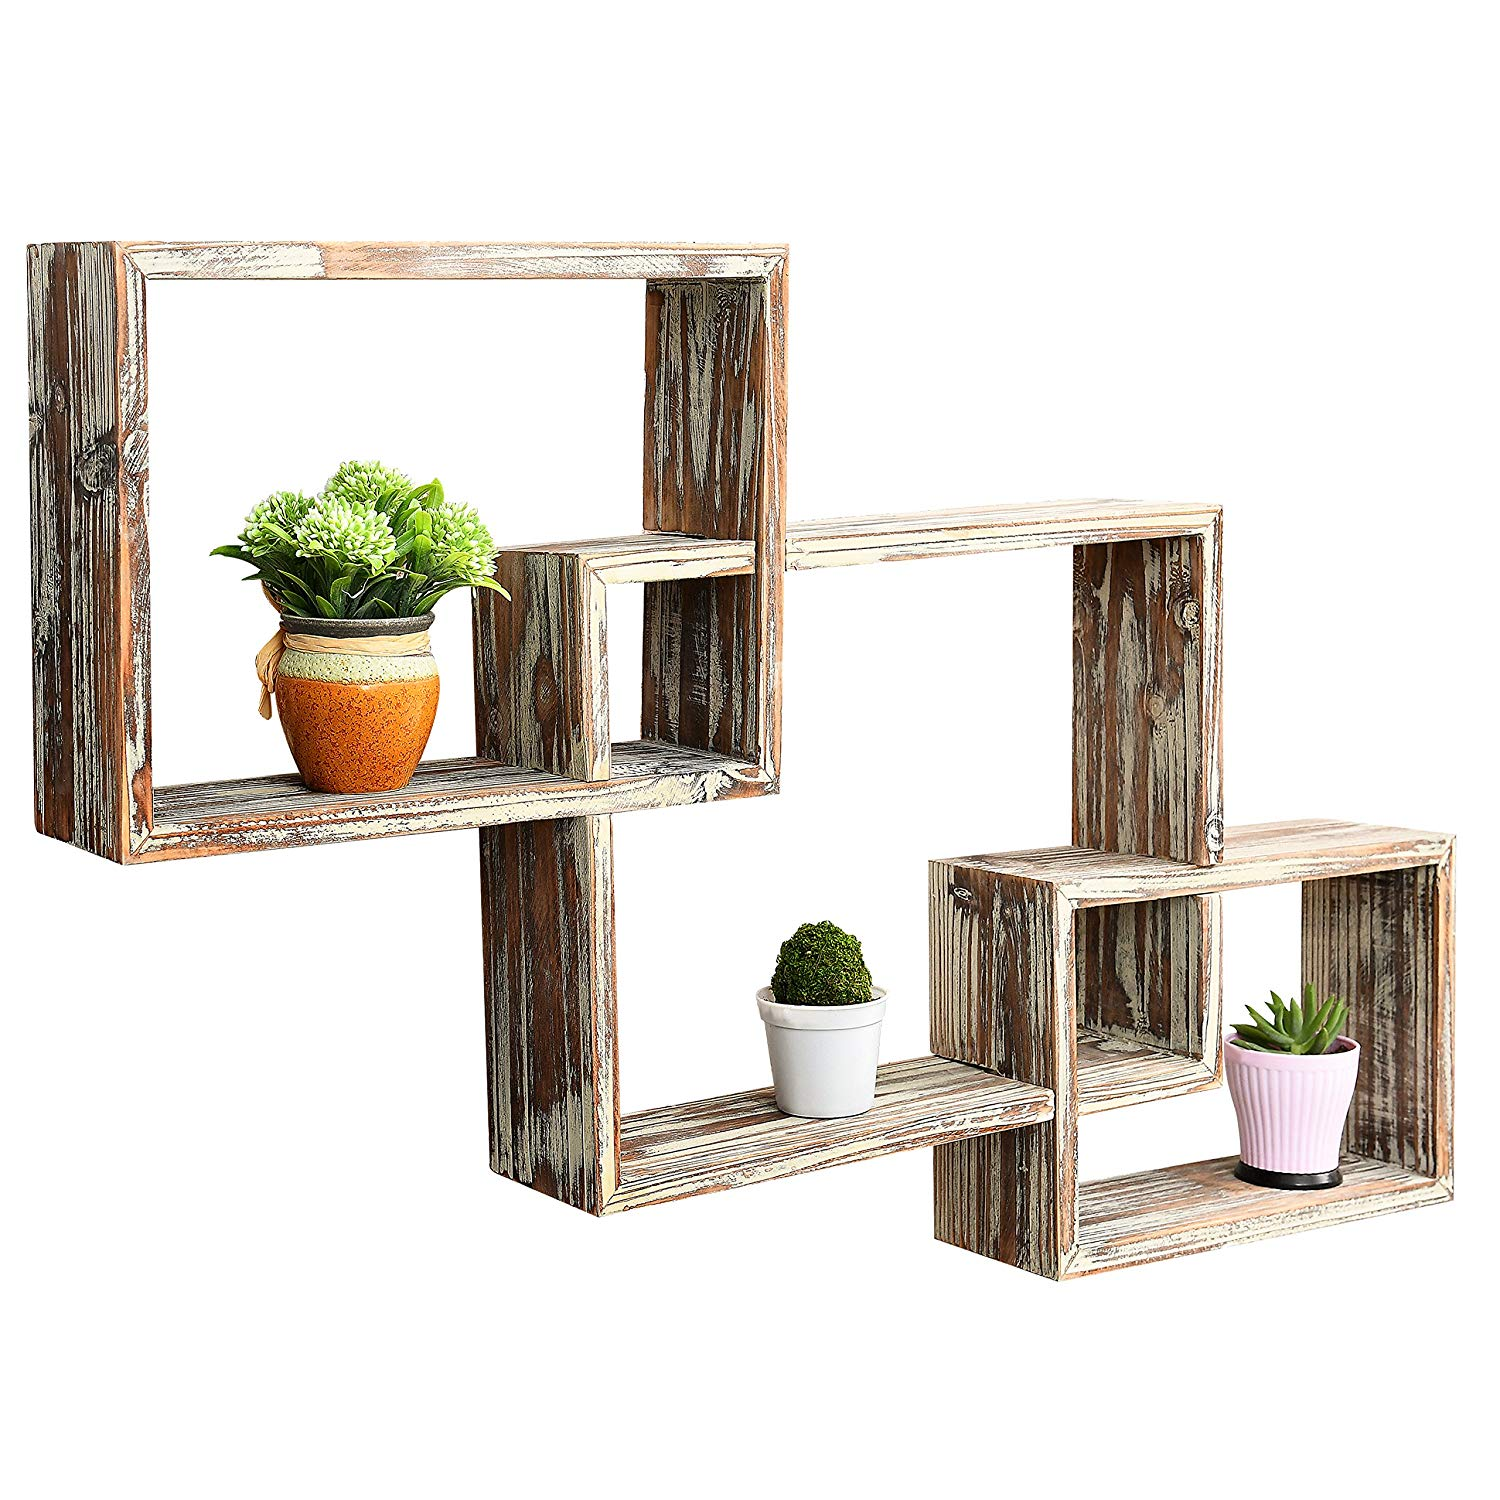 mygift wall mounted country rustic brown interlocking rectangular floating box shelf shadow display shelves set home kitchen threshold diy shower laying underlayment for vinyl